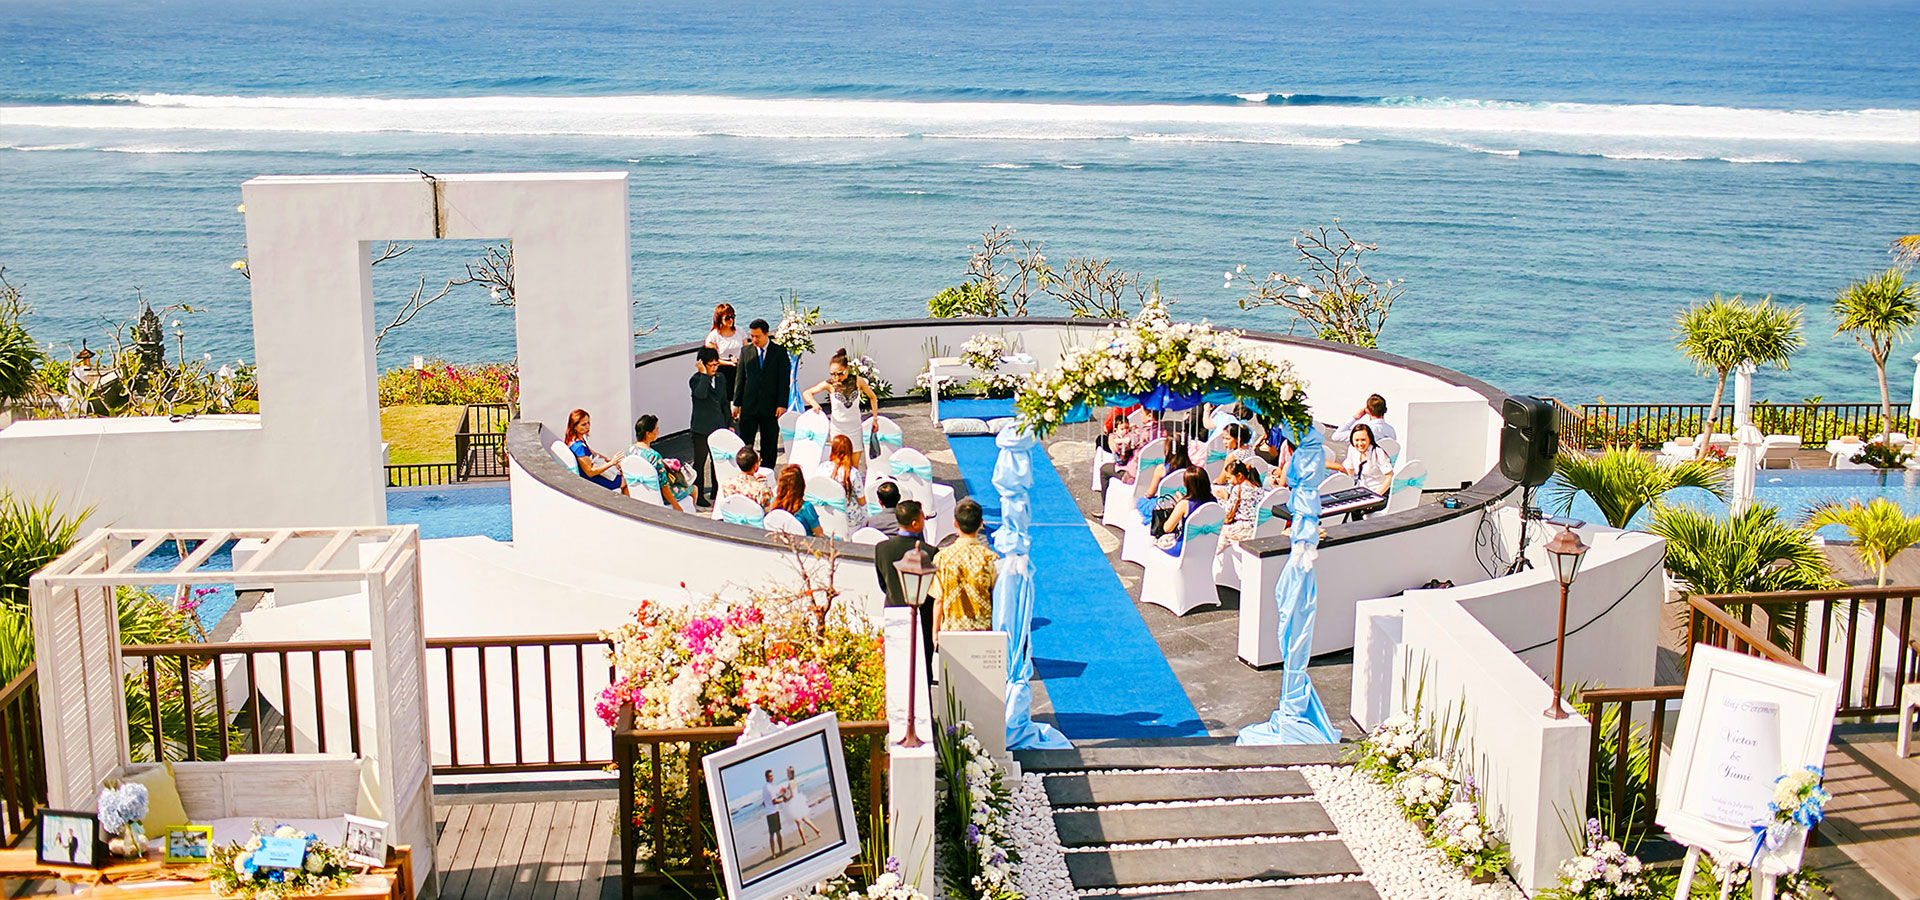 Bali Wedding at Ther Ring of Fire